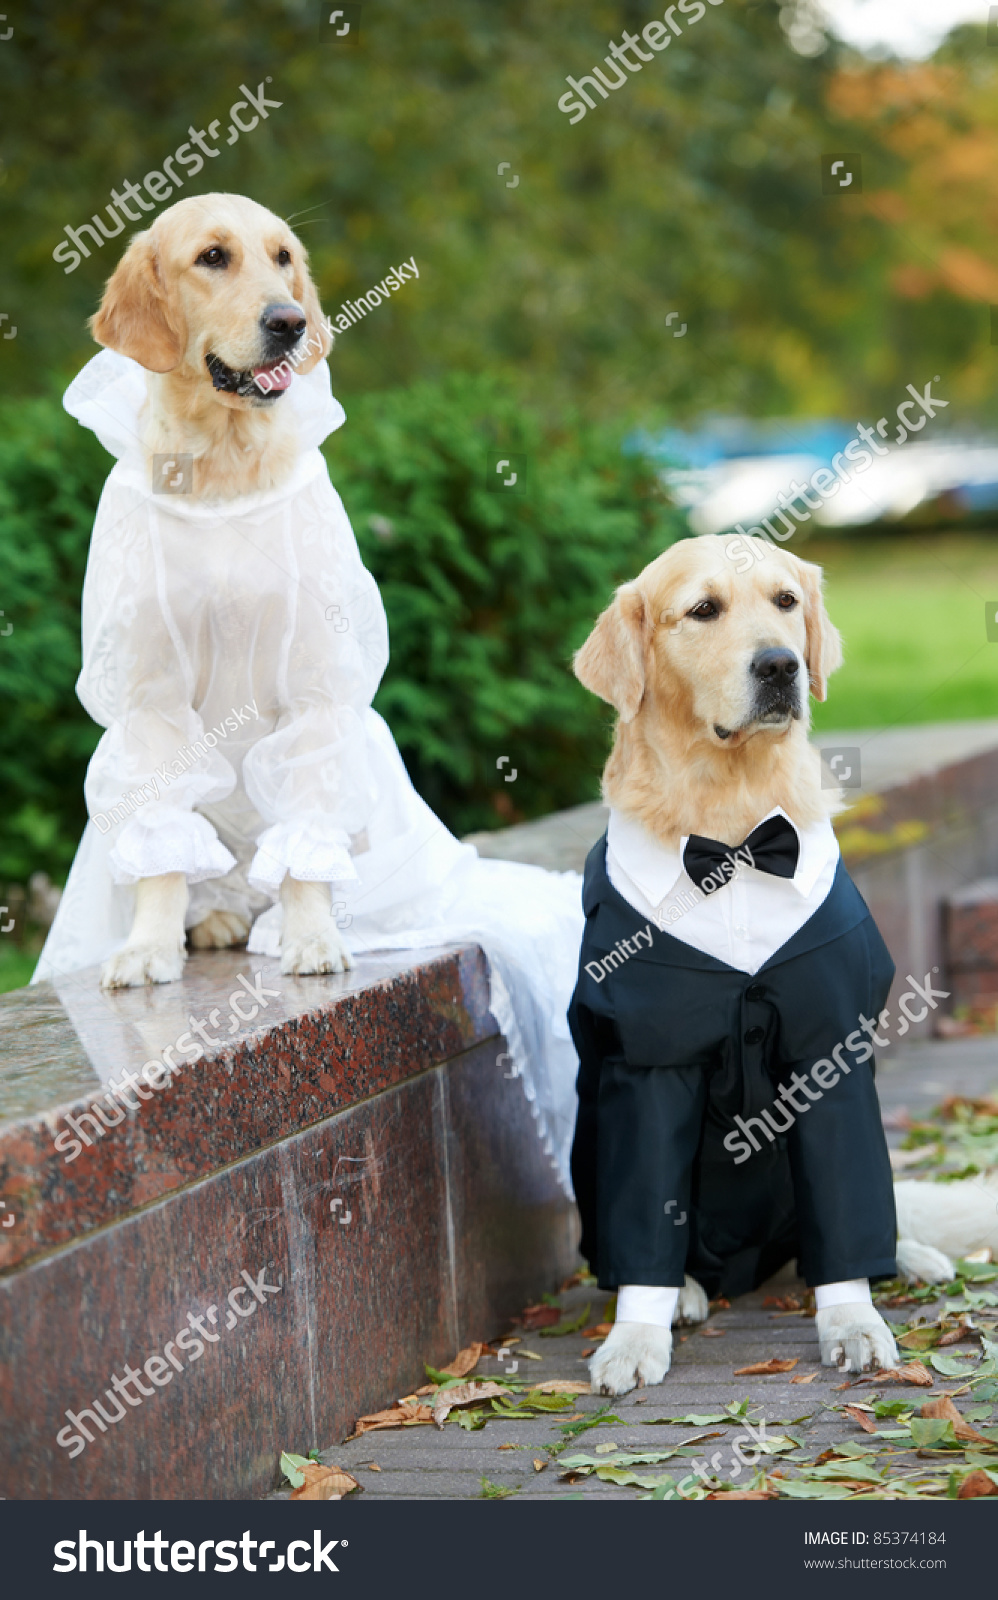 Two Golden Retriever Dogs Wedding Clothing Sitting